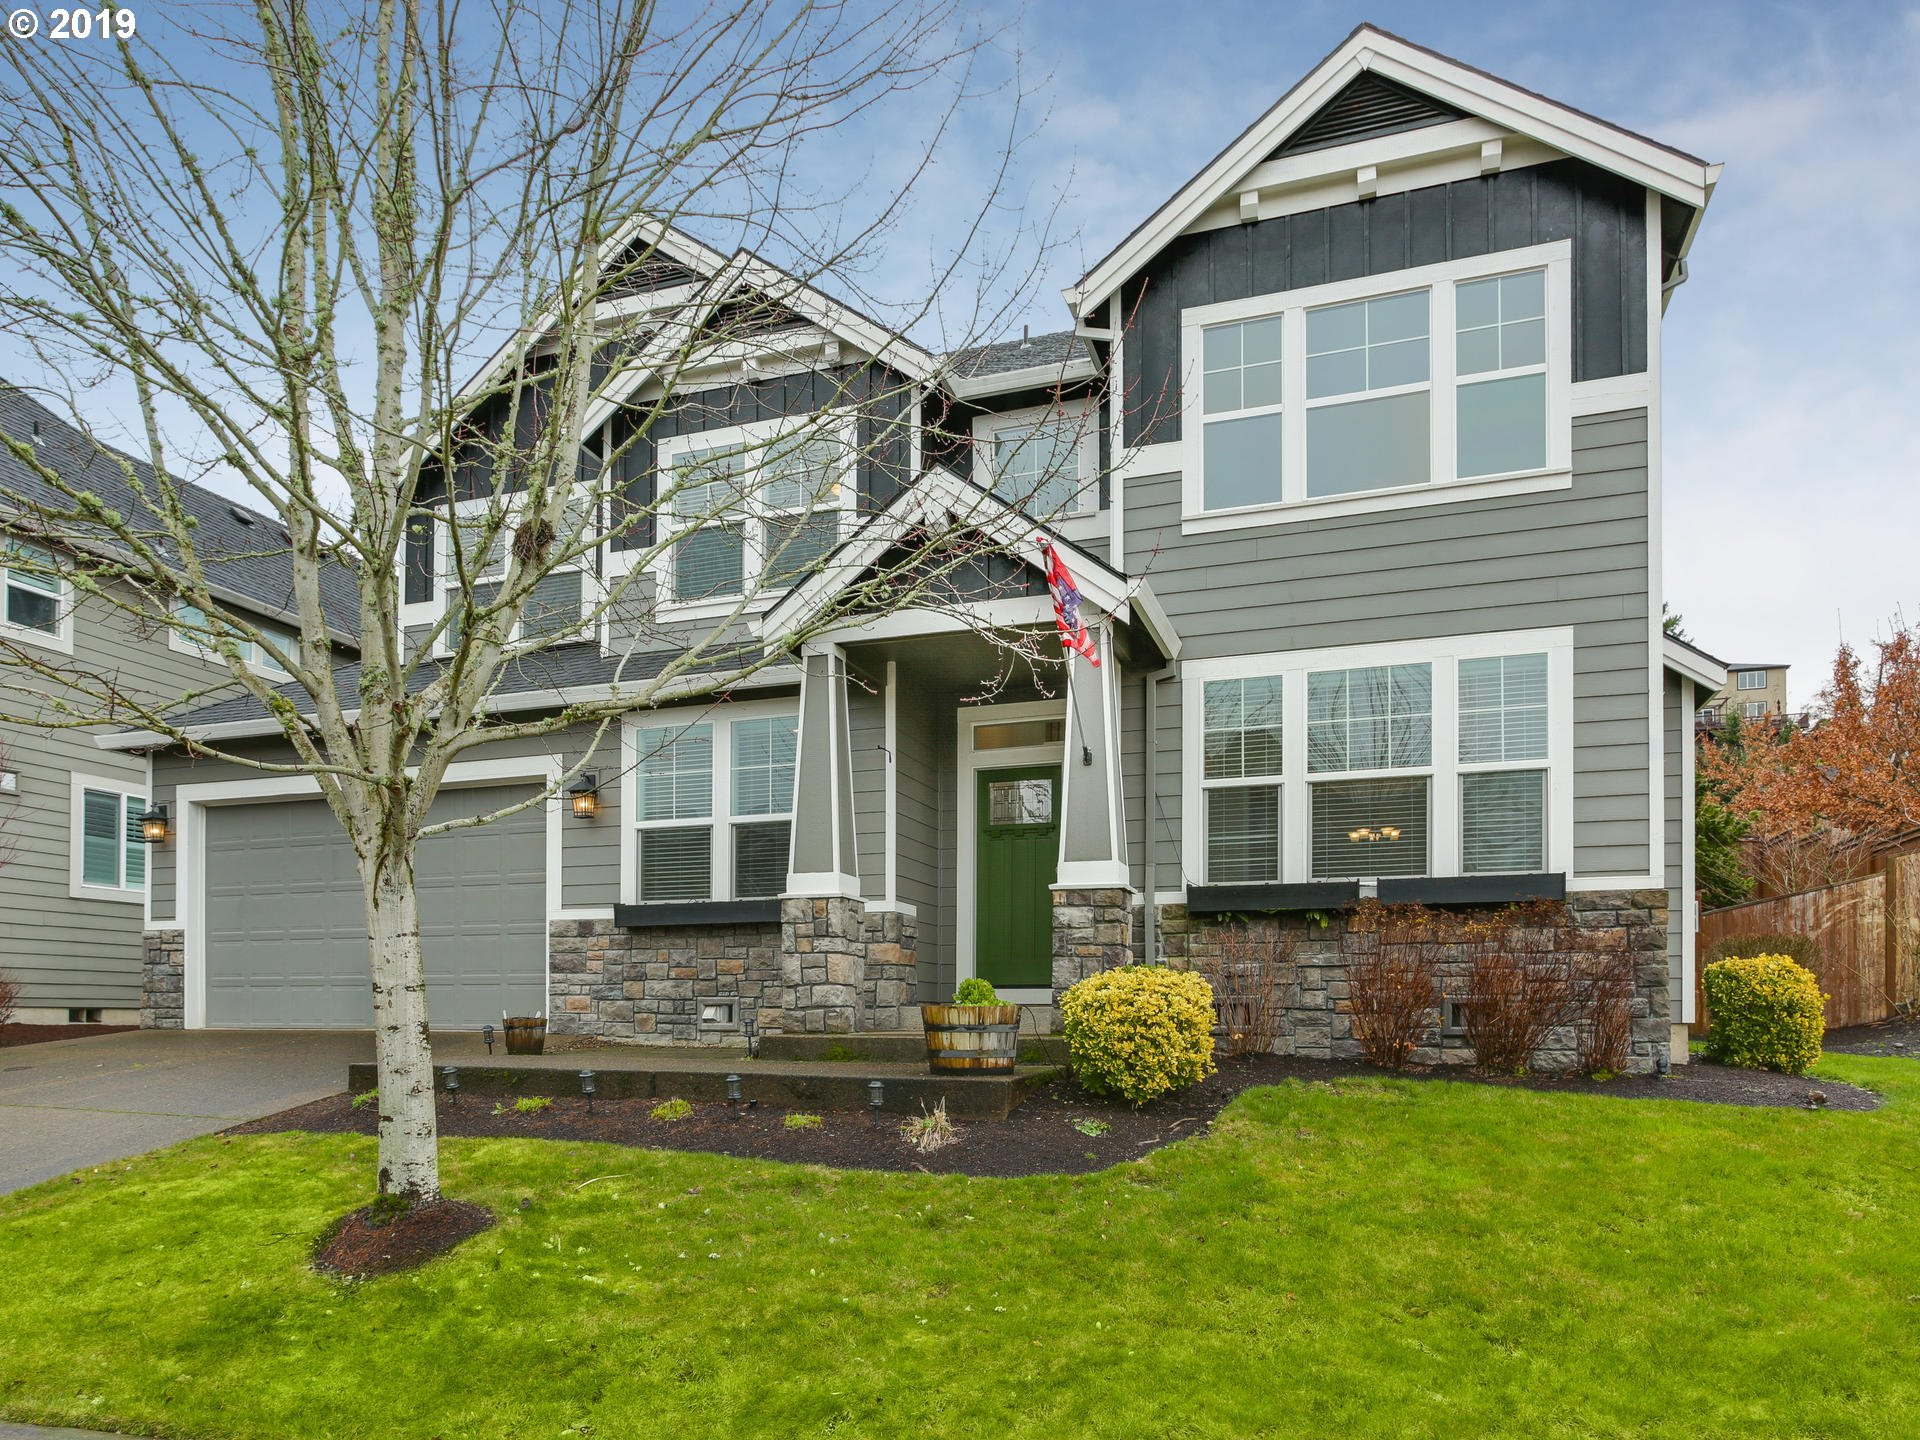 Photo of 138 LINK CT Newberg OR 97132